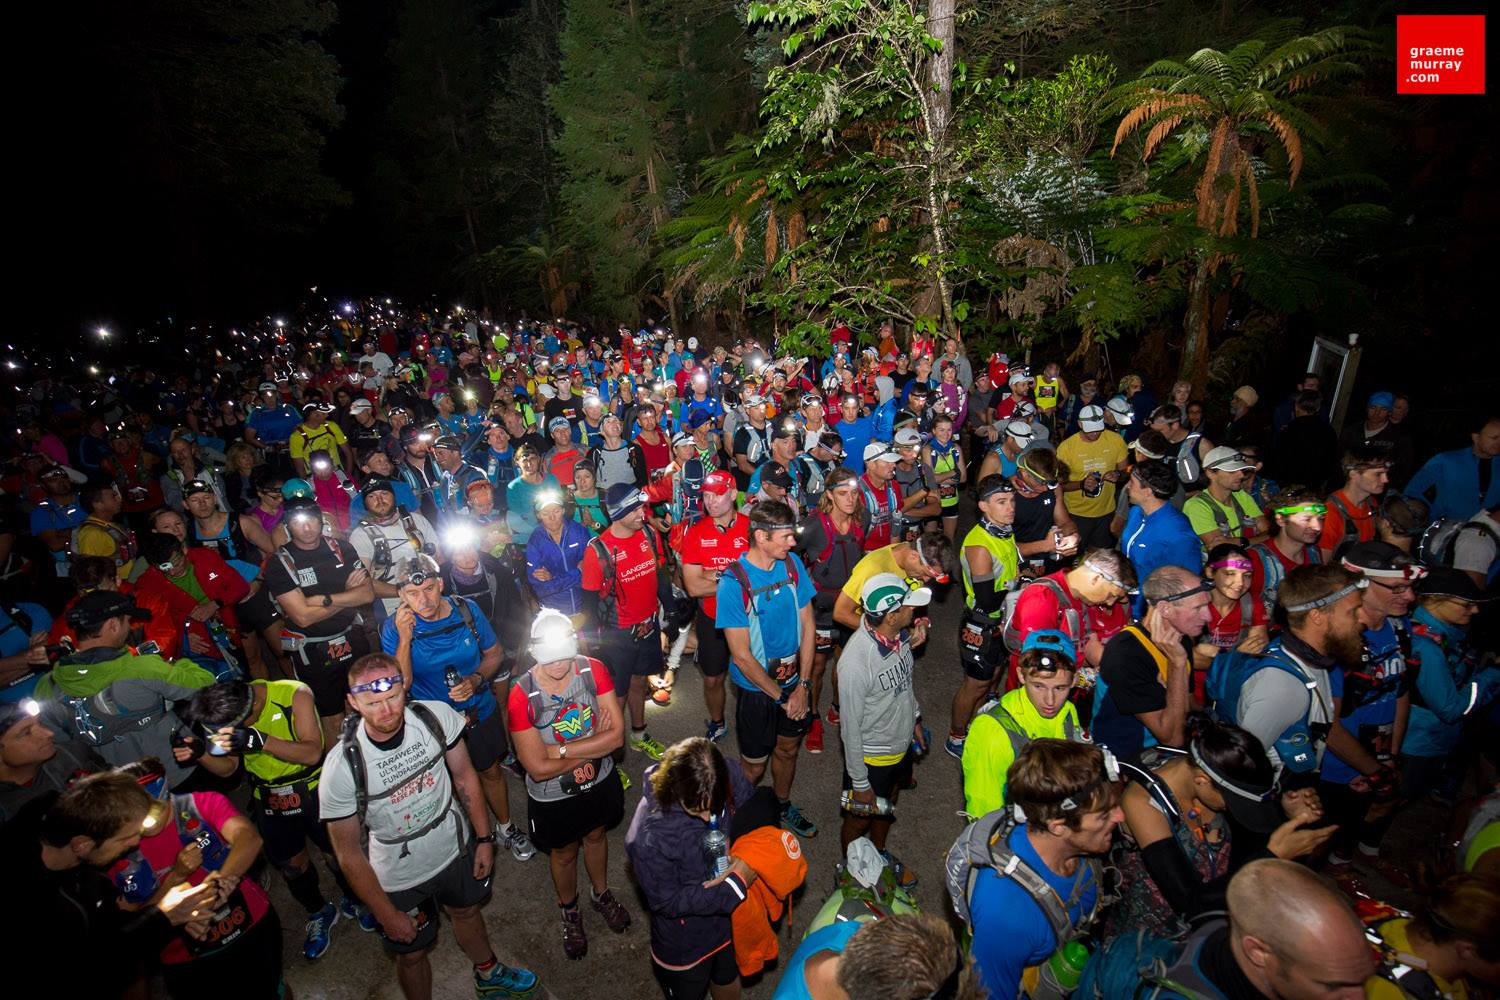 The crowd at the start. (I couldn't find myself in this pic.) Photo by Graeme Murray courtesy Tarawera Ultra.